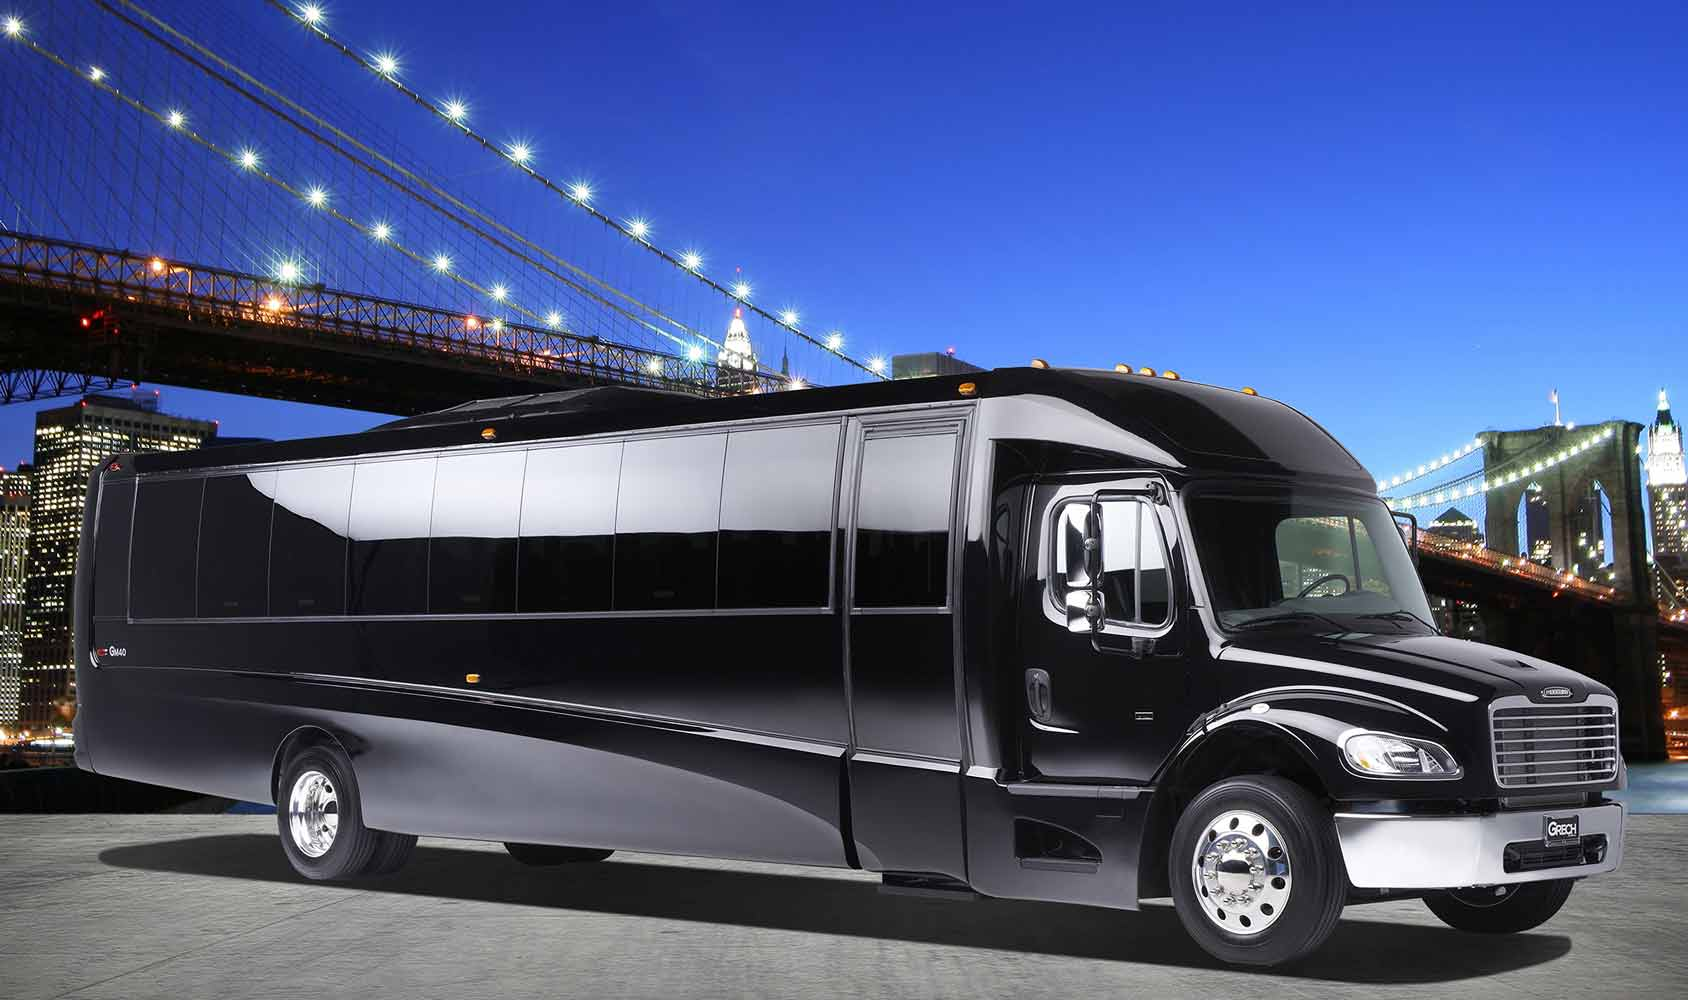 Party Bus Limo Services Minneapolis MN / St Paul Minnesota Exterior Side View